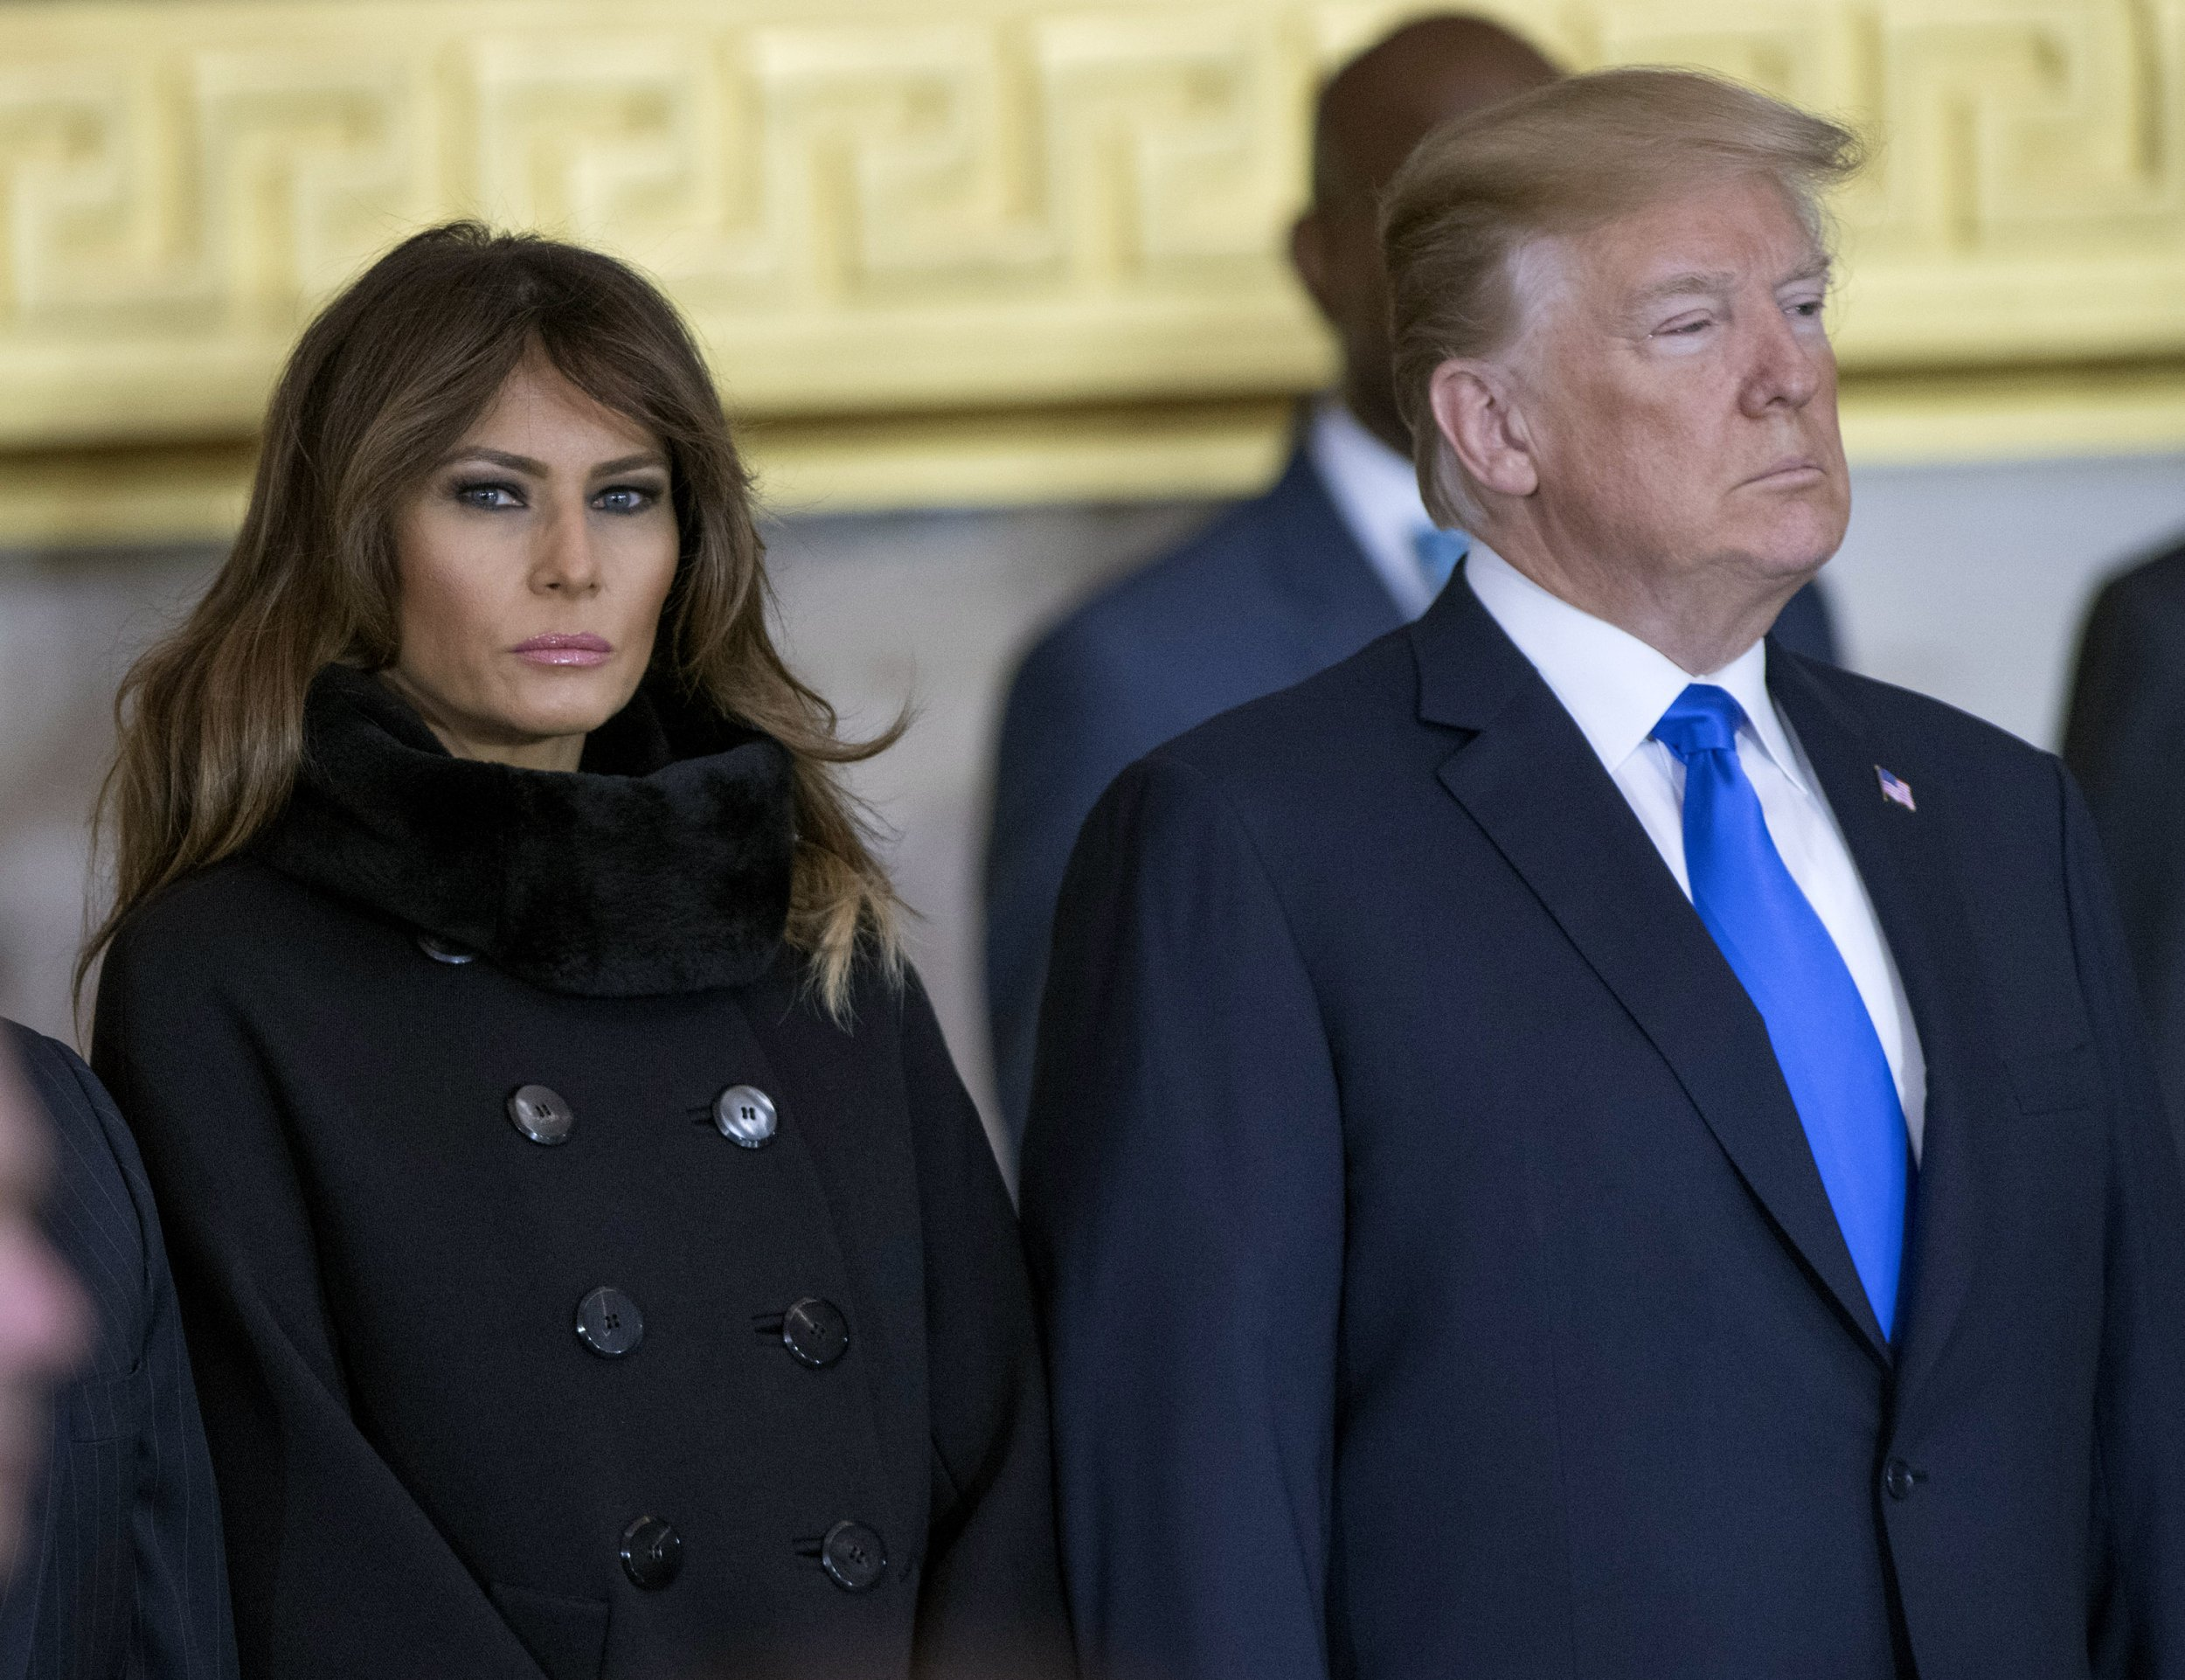 Should Melania Leave Trump Presidents Alleged Infidelity